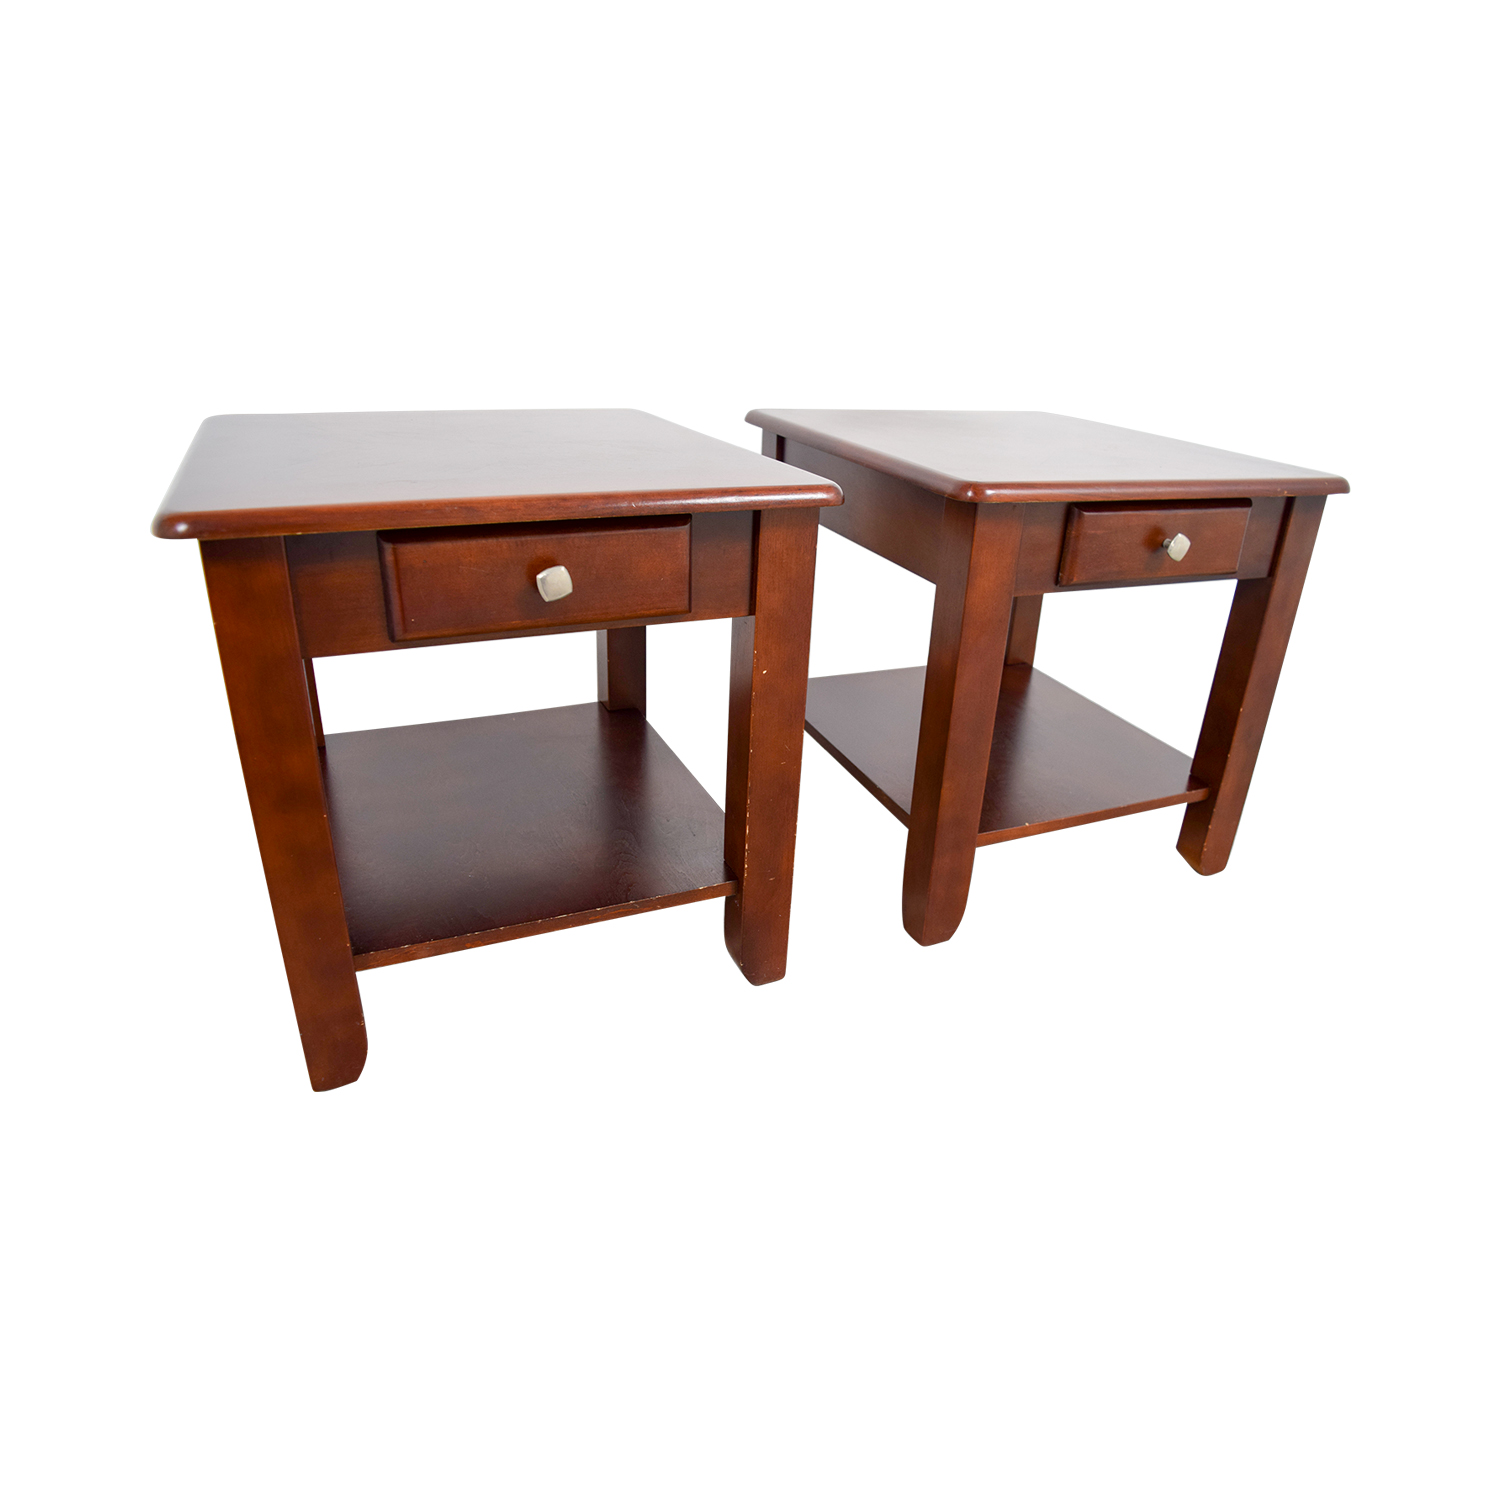 Raymour & Flanigan Raymour & Flanigan End Table set discount